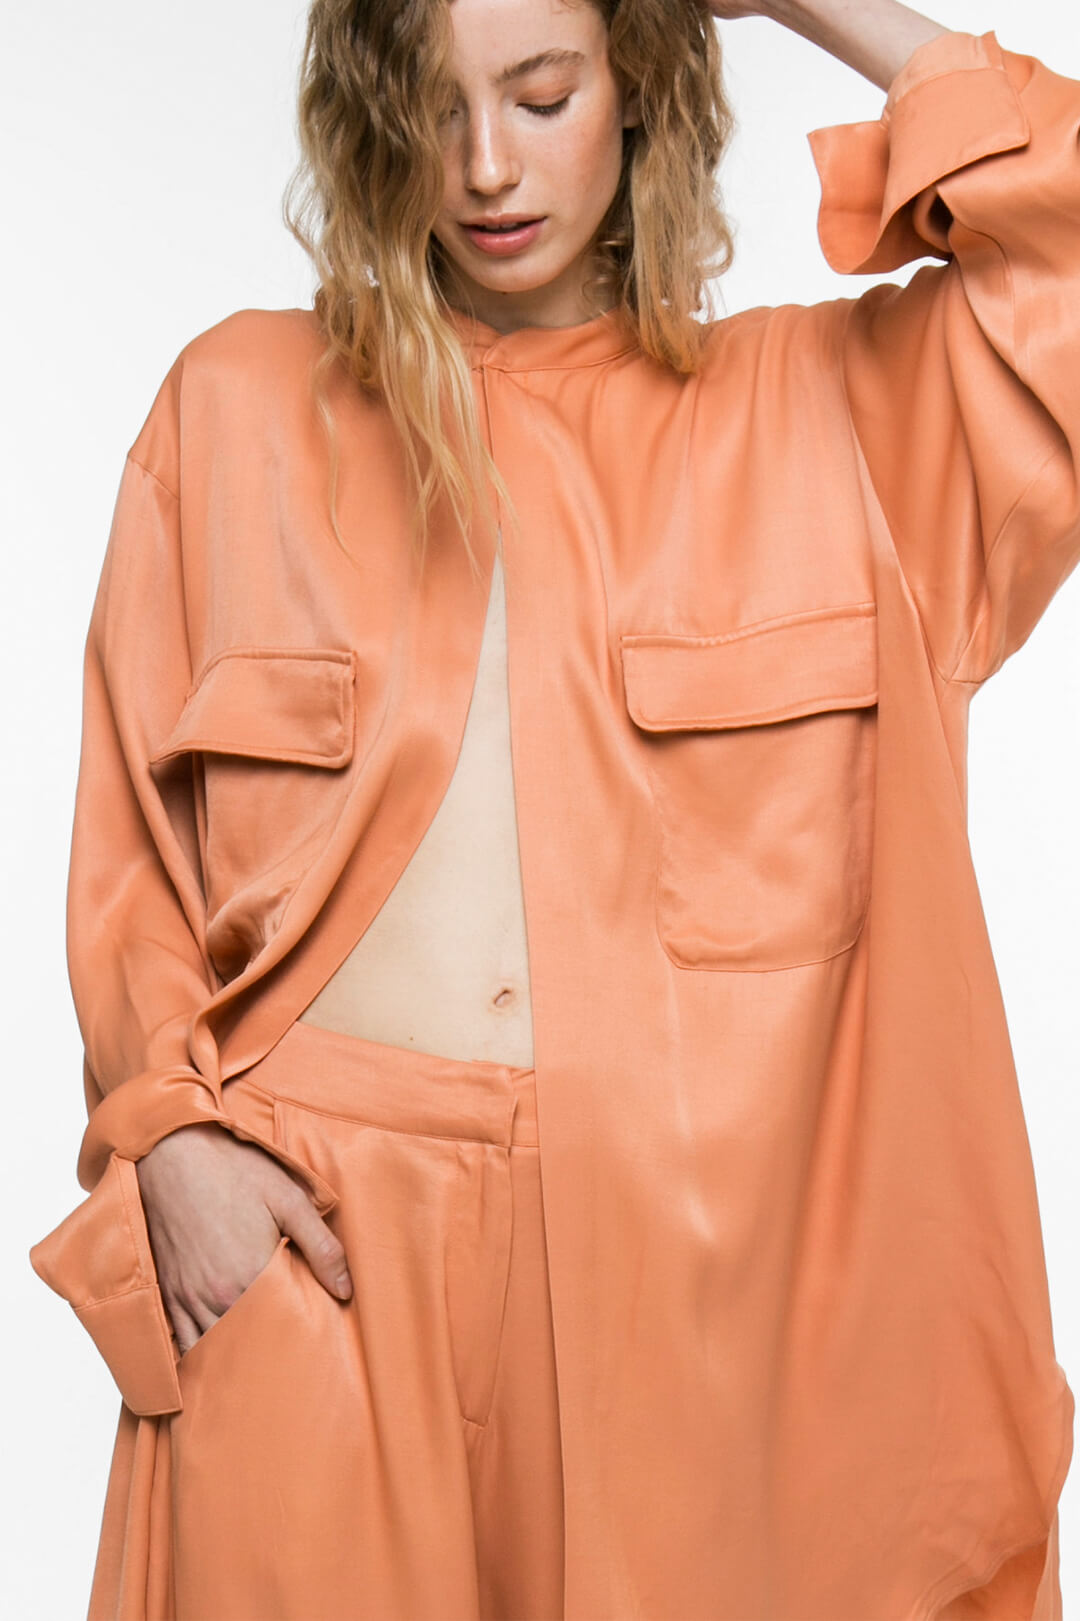 Peach pants with pockets on the side with pockets on the side